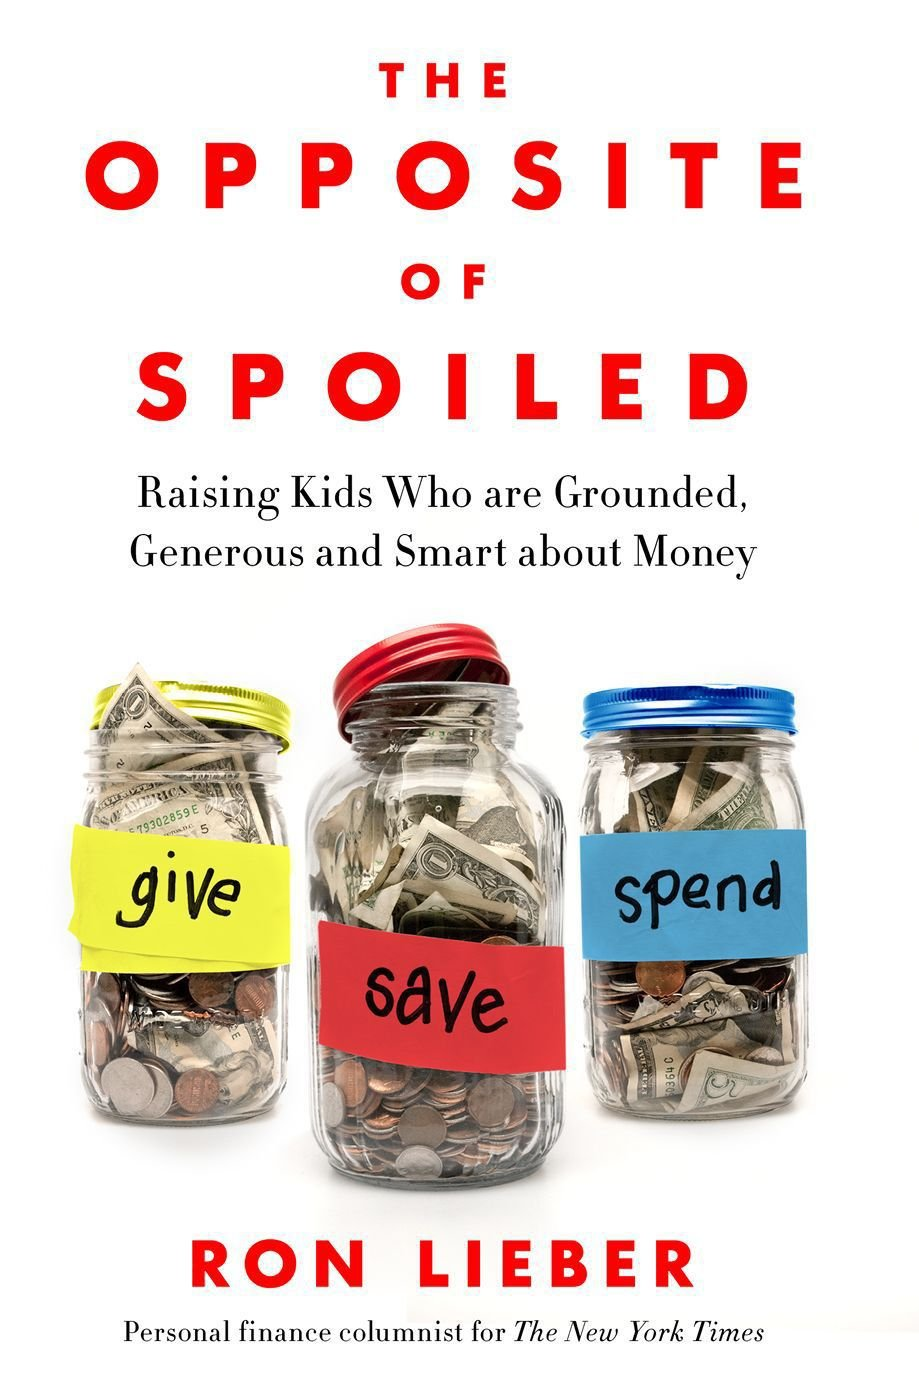 Book offers sage money advice for parents